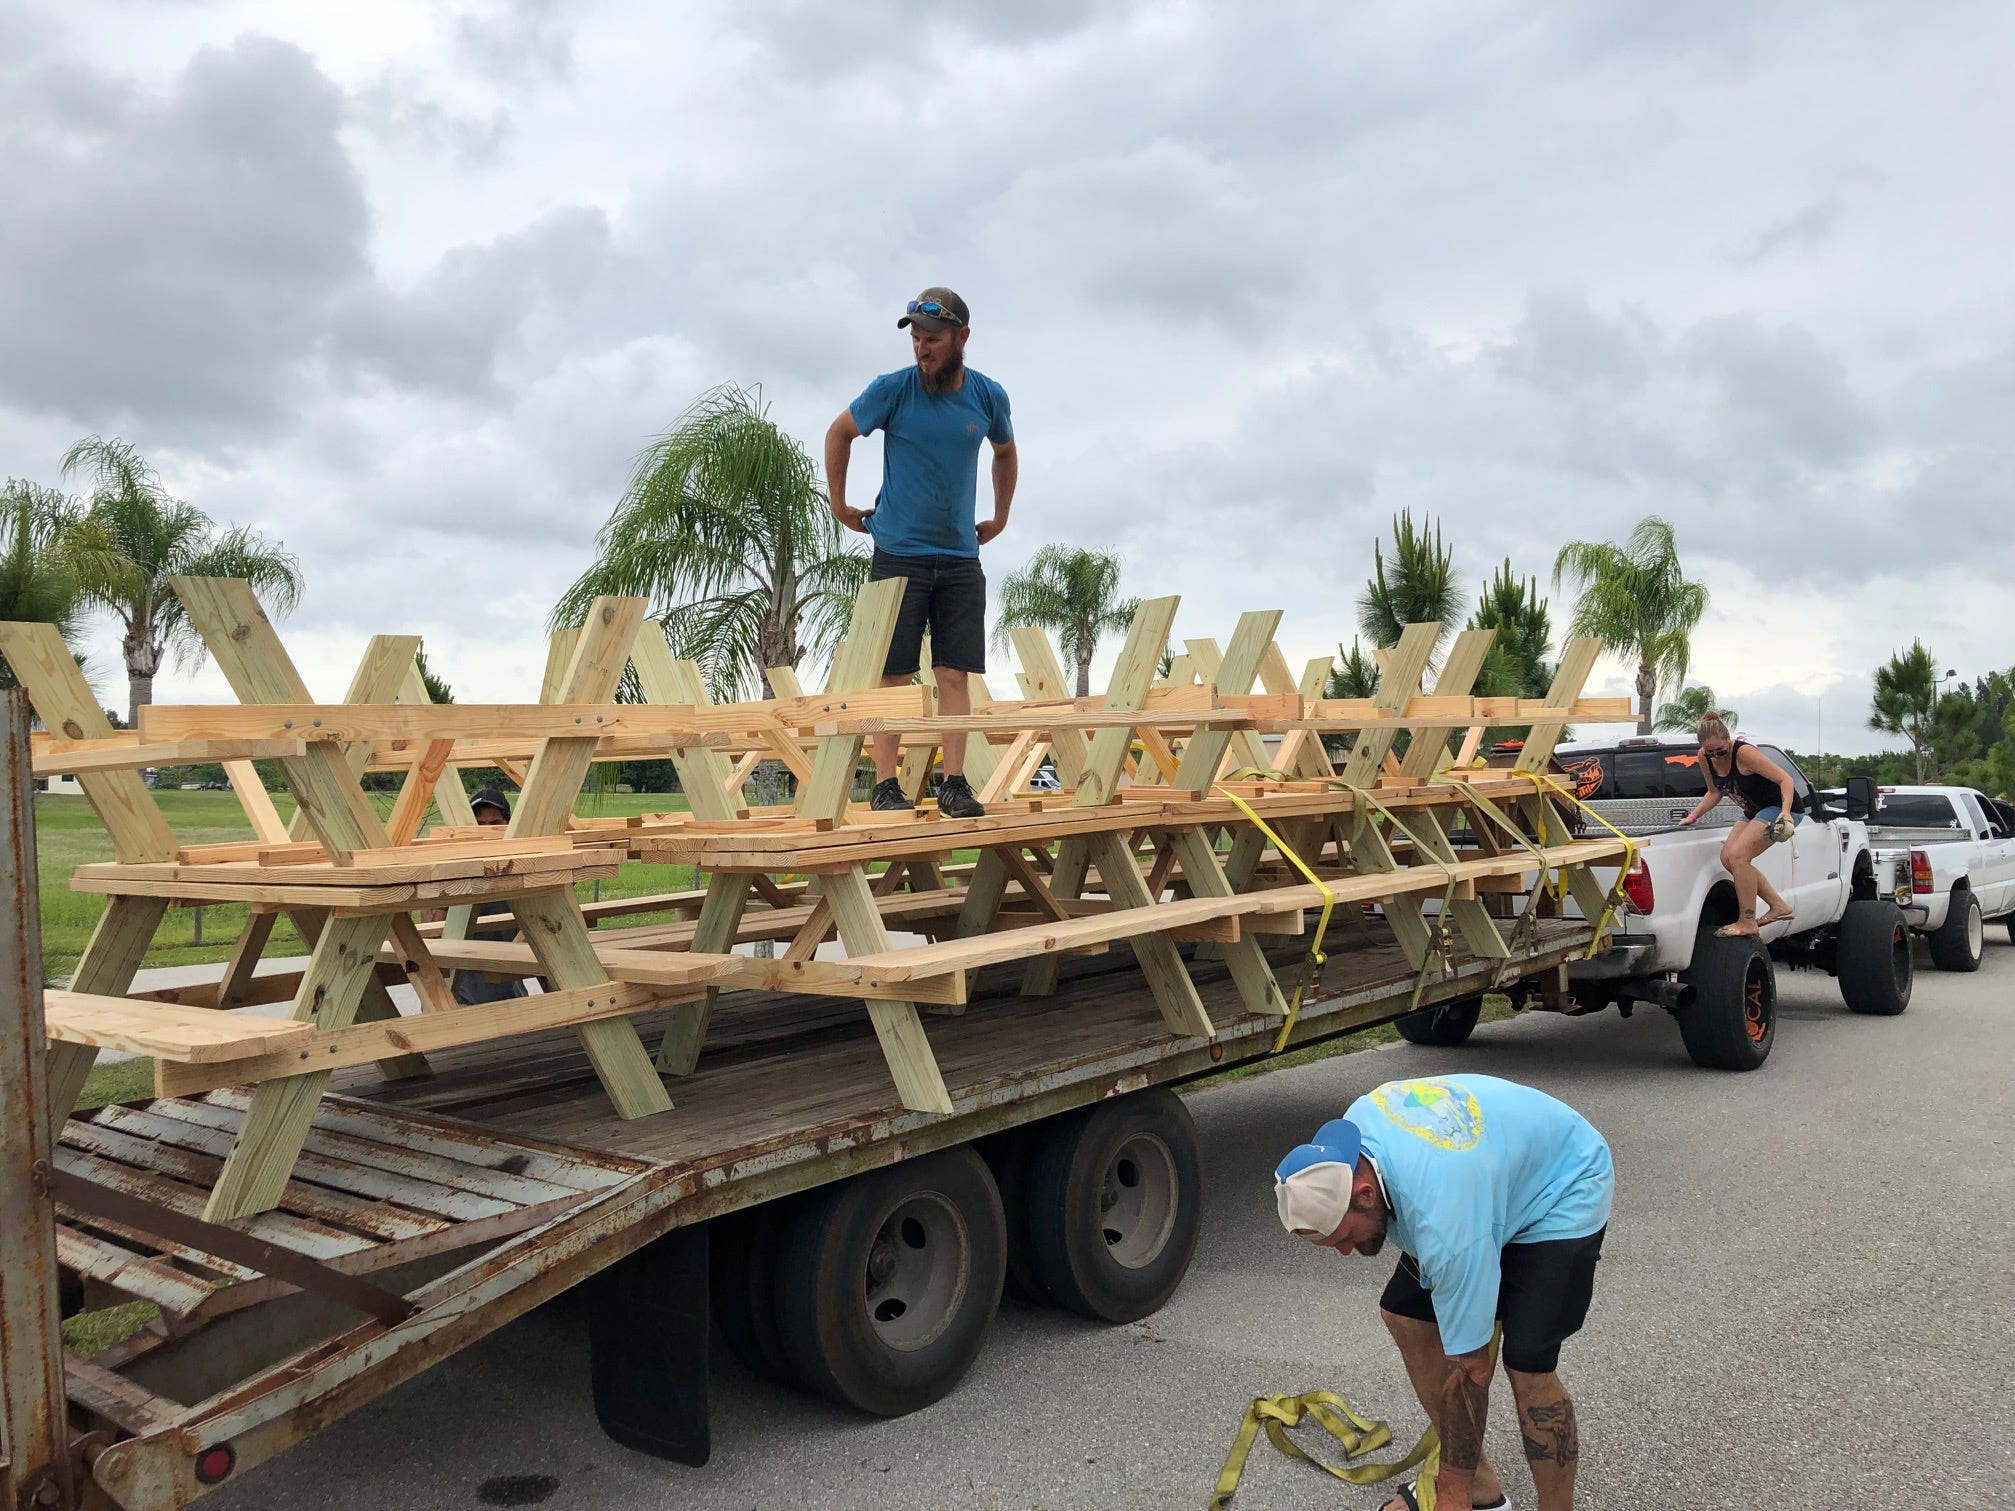 Businesses and area residents helped build 57 Picnic tables Saturday, a response to two deadly hit-and-run crashes, one at a Cape Coral bus stop and one  in North Fort Myers, and dropped them off at various sites in Lee County Sunday.